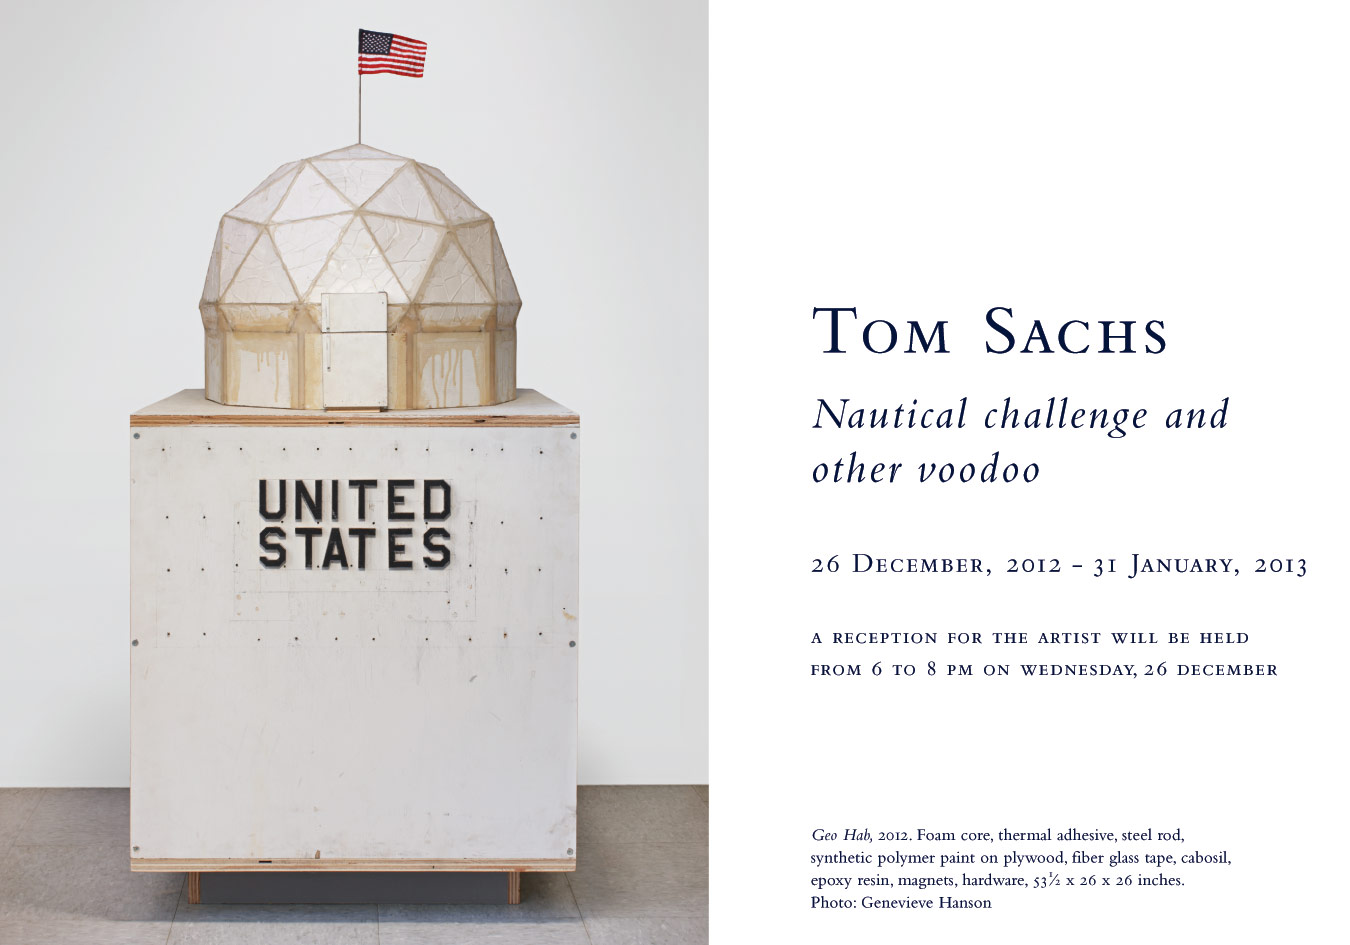 Tom-Sachs_Nautical-challenge-and-other-voodoo-hr2